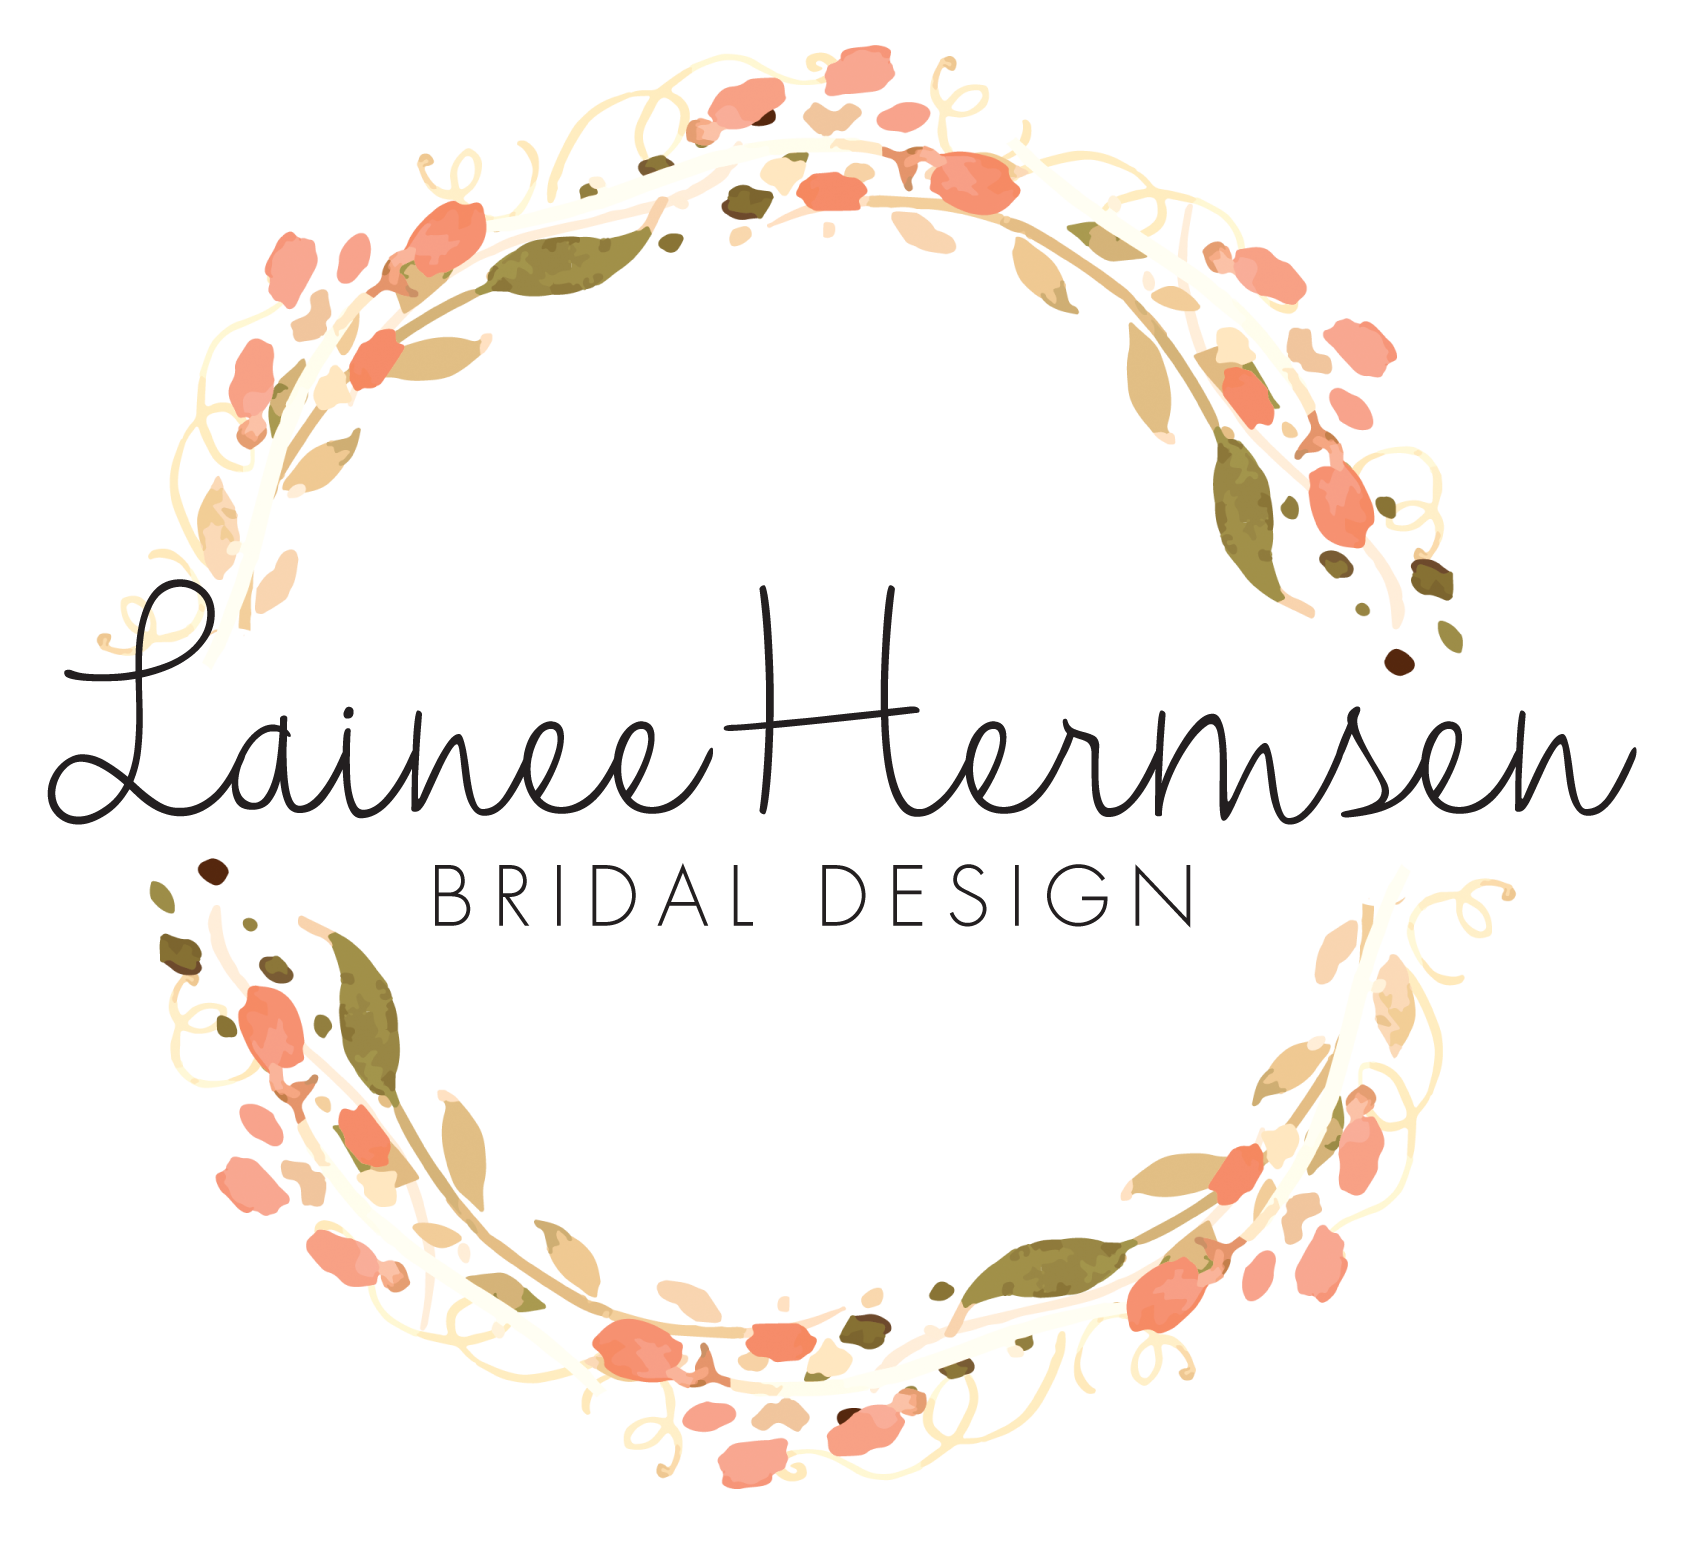 The Best Season To Get Married Based On Your Personality: Lainee Hermsen Bridal Design